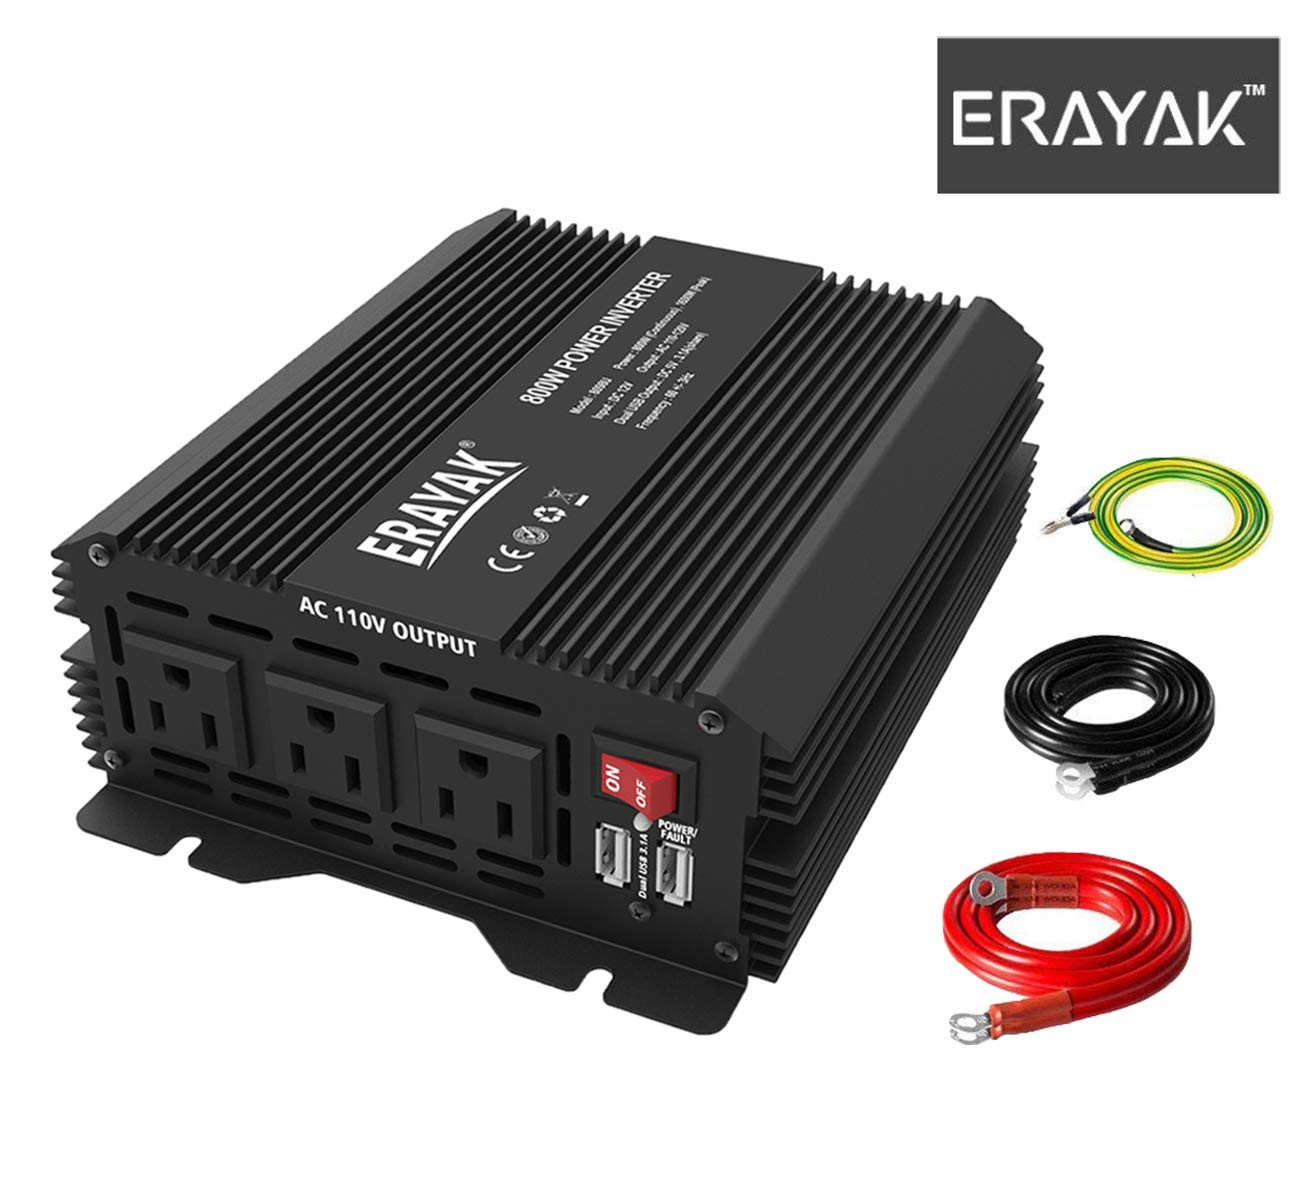 ERAYAK 800W Power Inverter DC 12V to 110V AC with 3 AC Outlets Dual USB Ports Car Converter Charger for Home Office Travel RV Car Camping